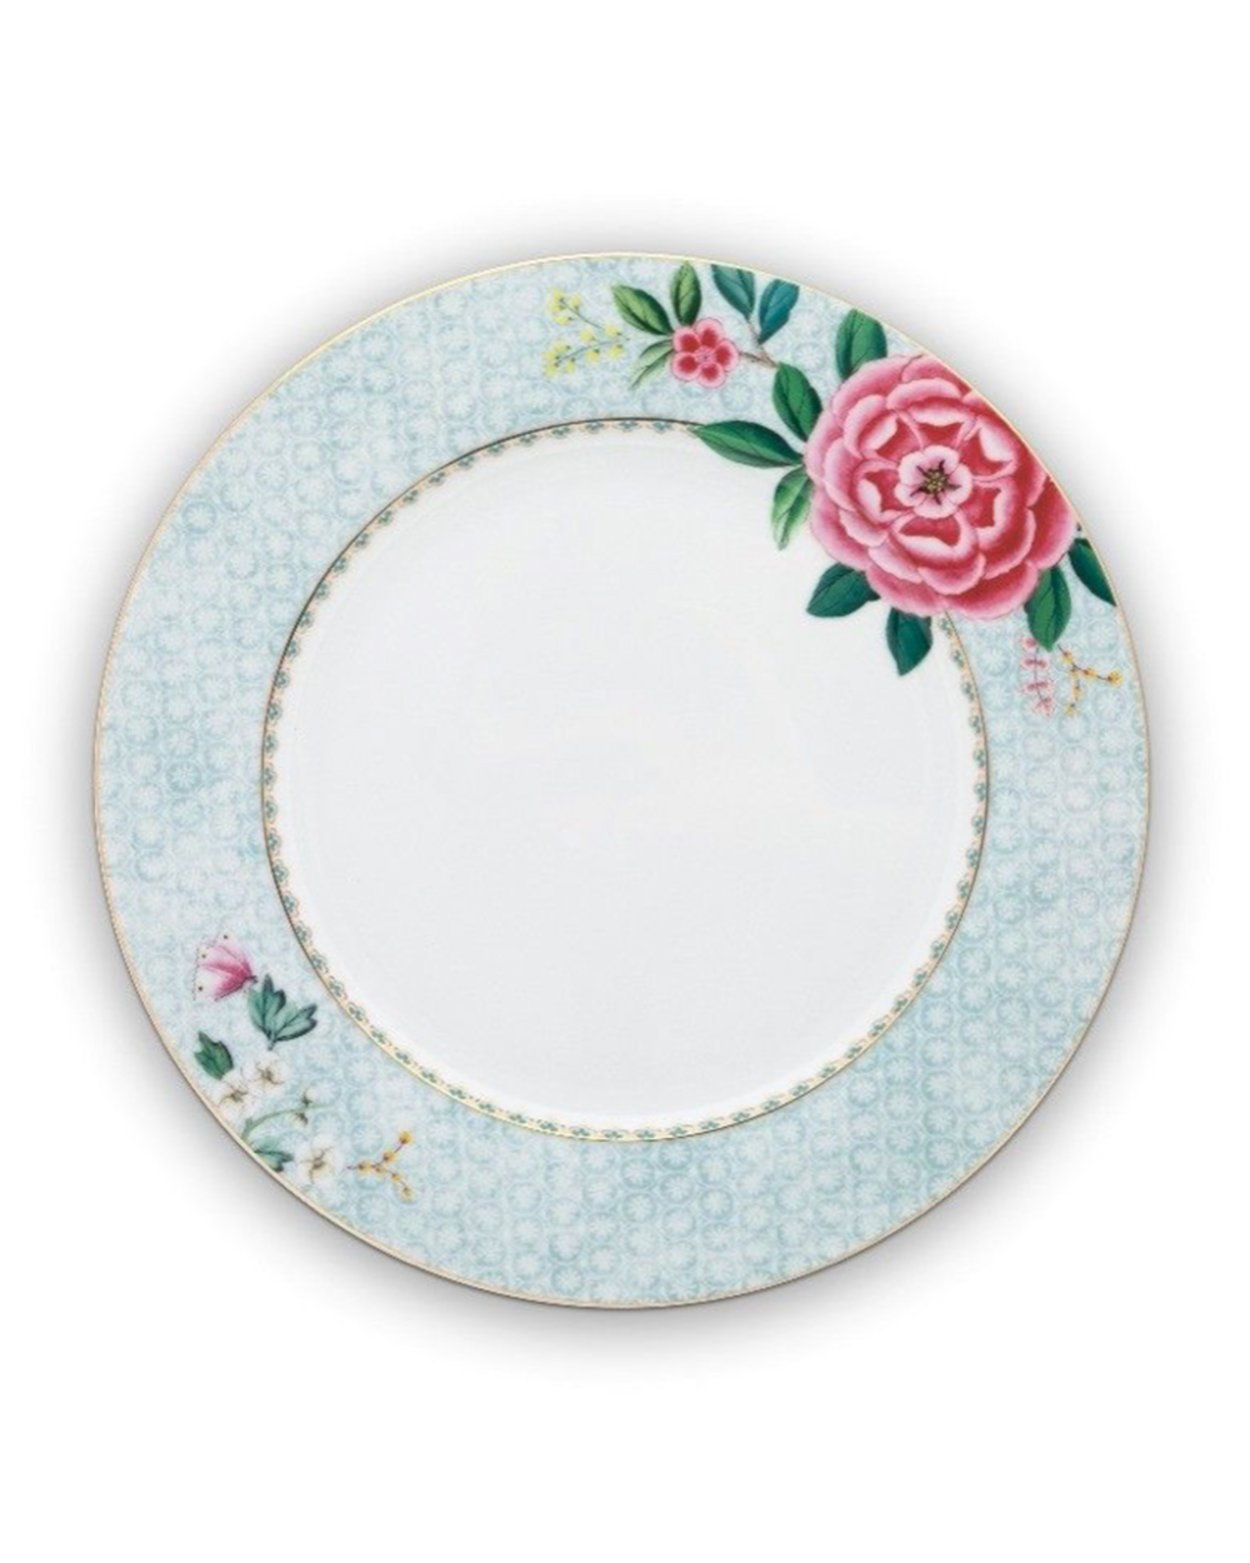 Blushing Birds Plate - White - 26.5cm